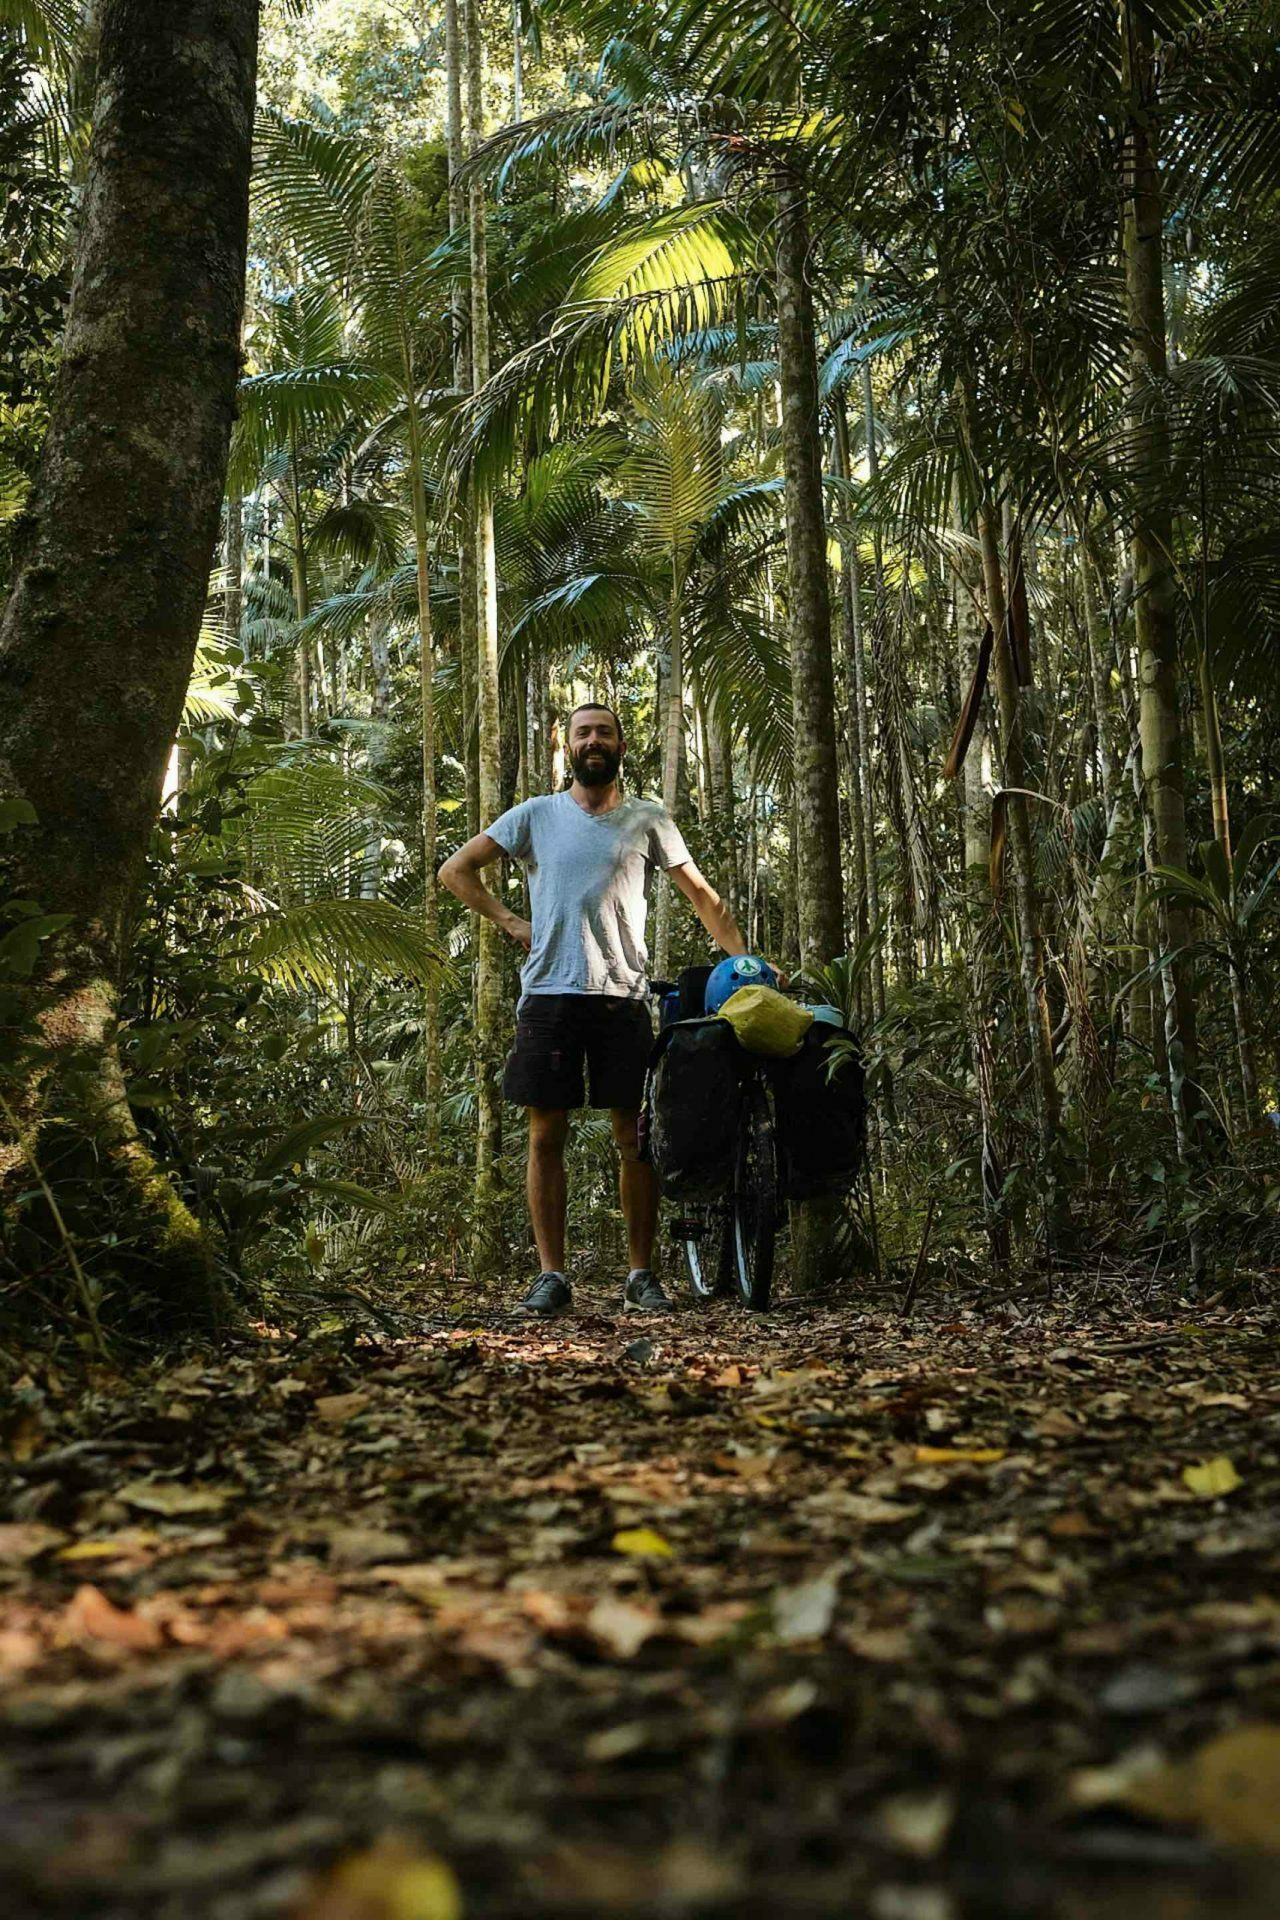 I (Almost) Cycled From Sydney to Cairns On A $120 Big W Bike - Joe Cuzzocrea, Bikepacking, Great Sandy National Park